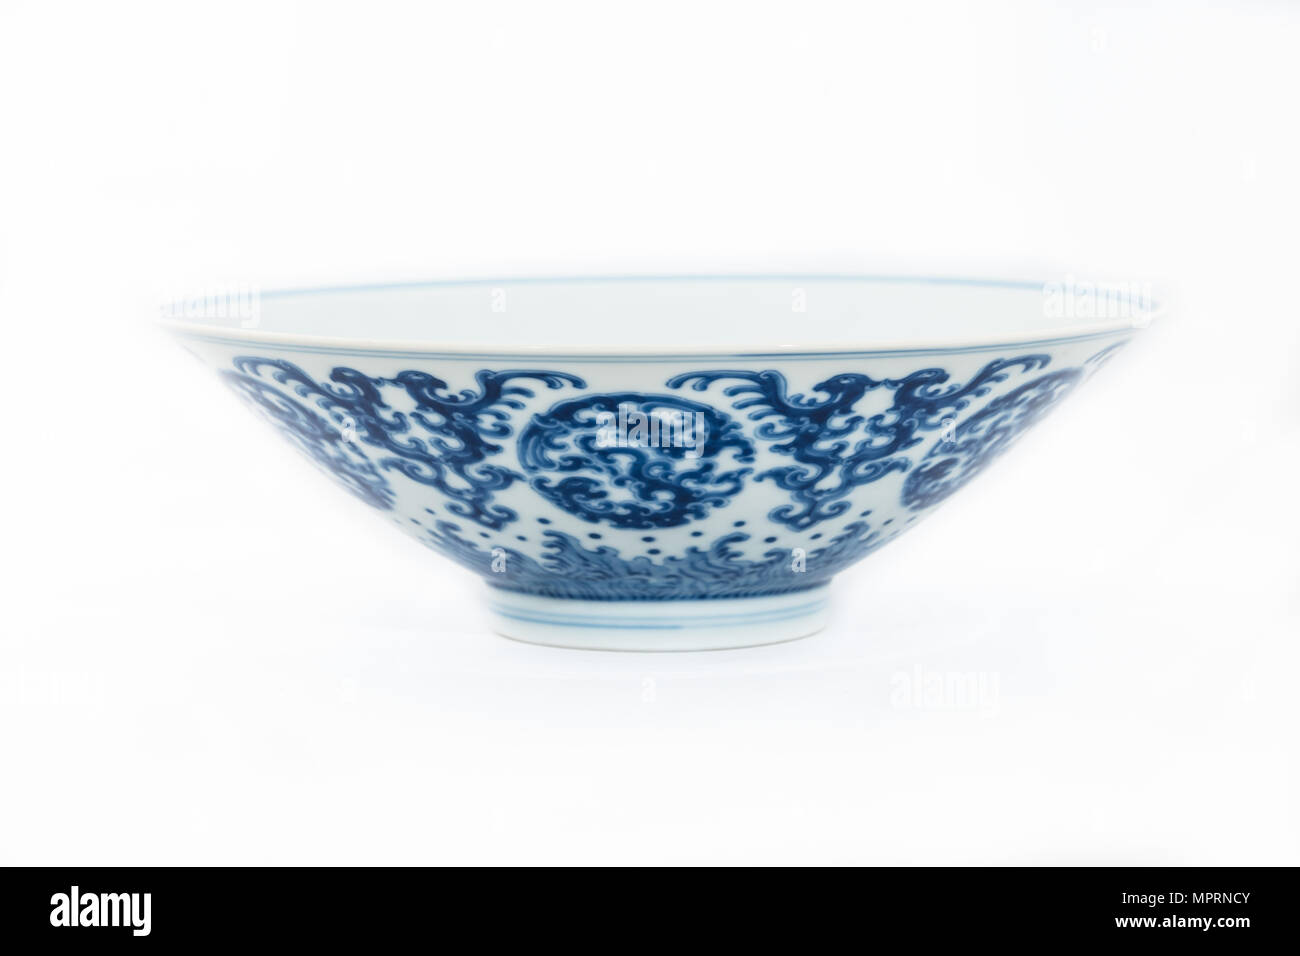 Blue and white bowl with kui dragon medallions, 1723-1735. Artist: Unknown. - Stock Image